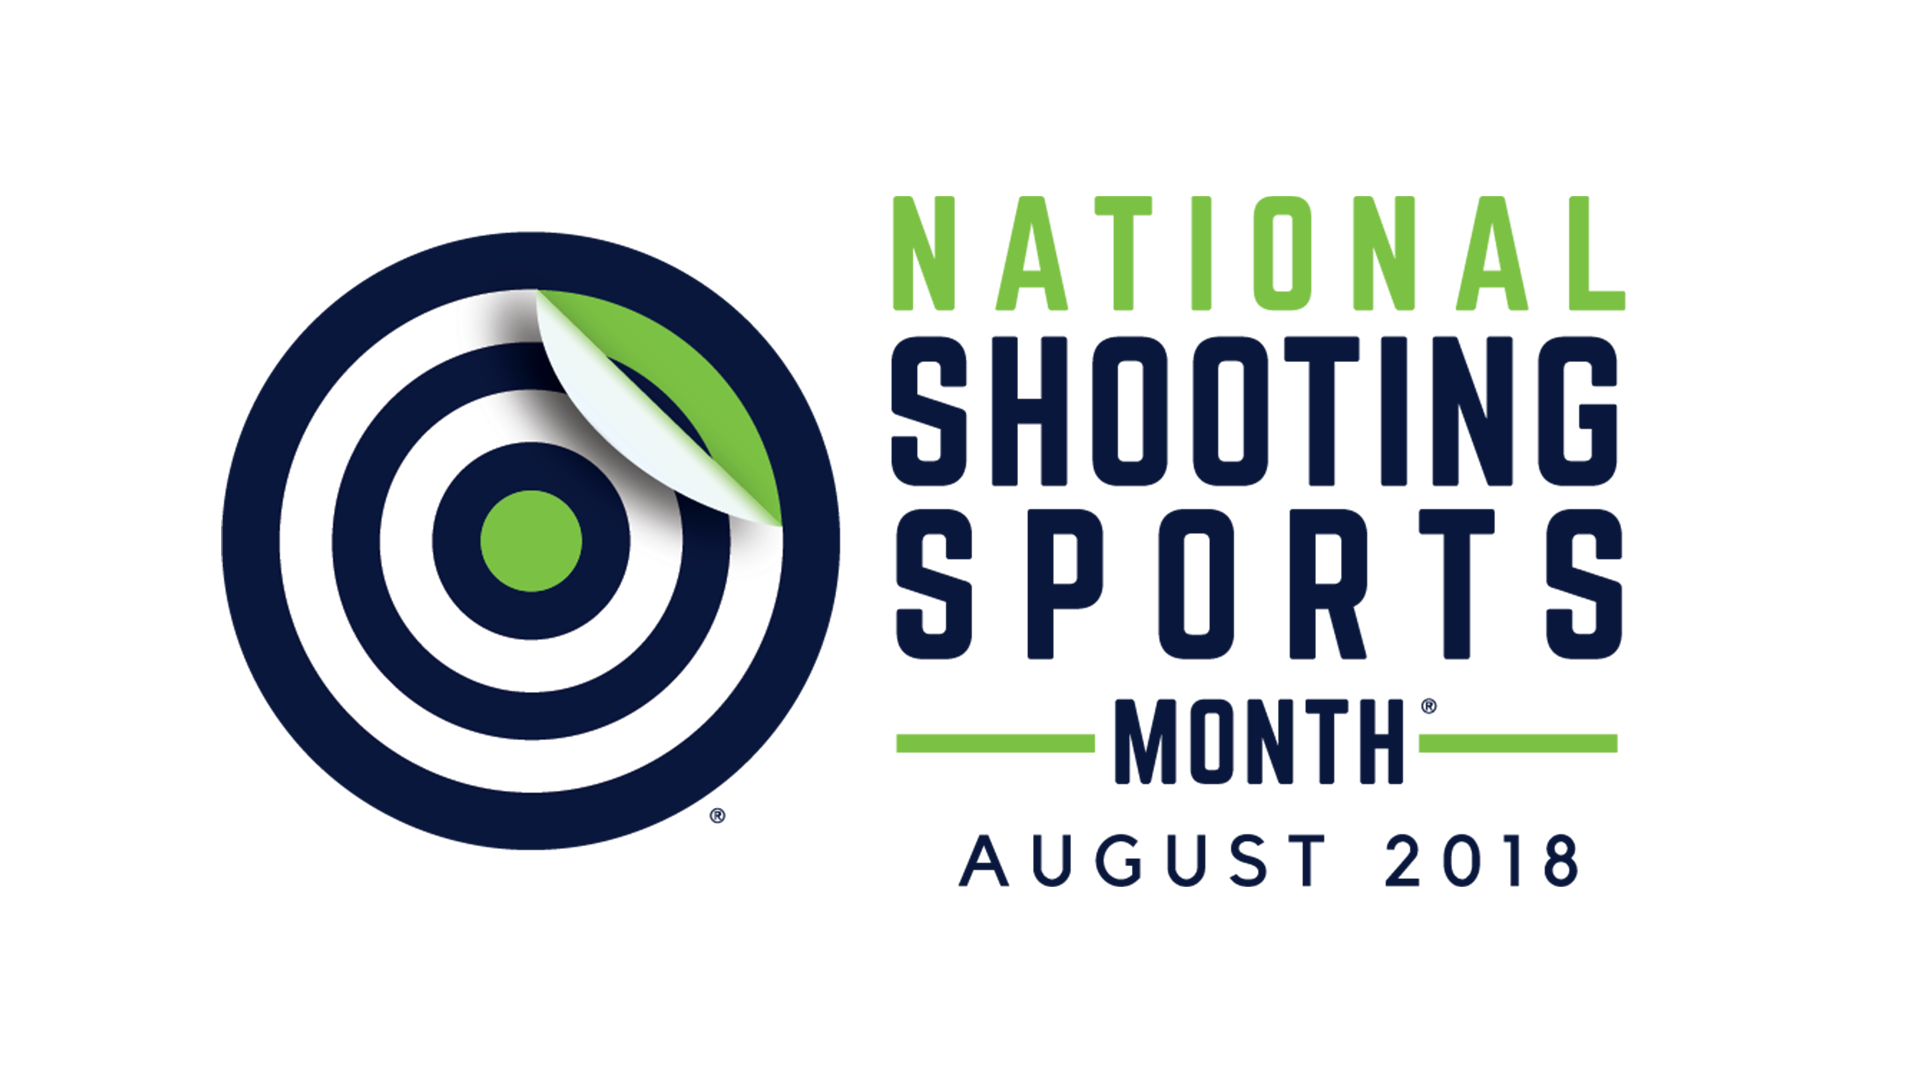 National Shooting Sport Month and Trigger Sweepstakes